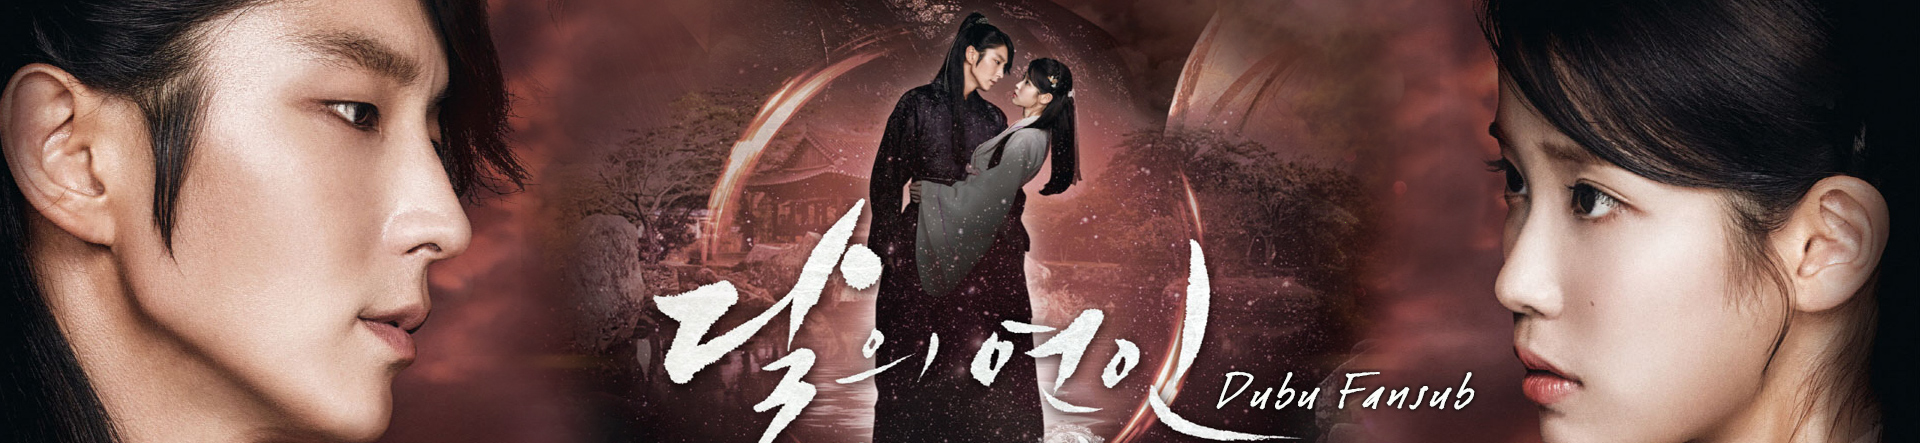 scarlet-heart-moon-lovers-vostfr-iu